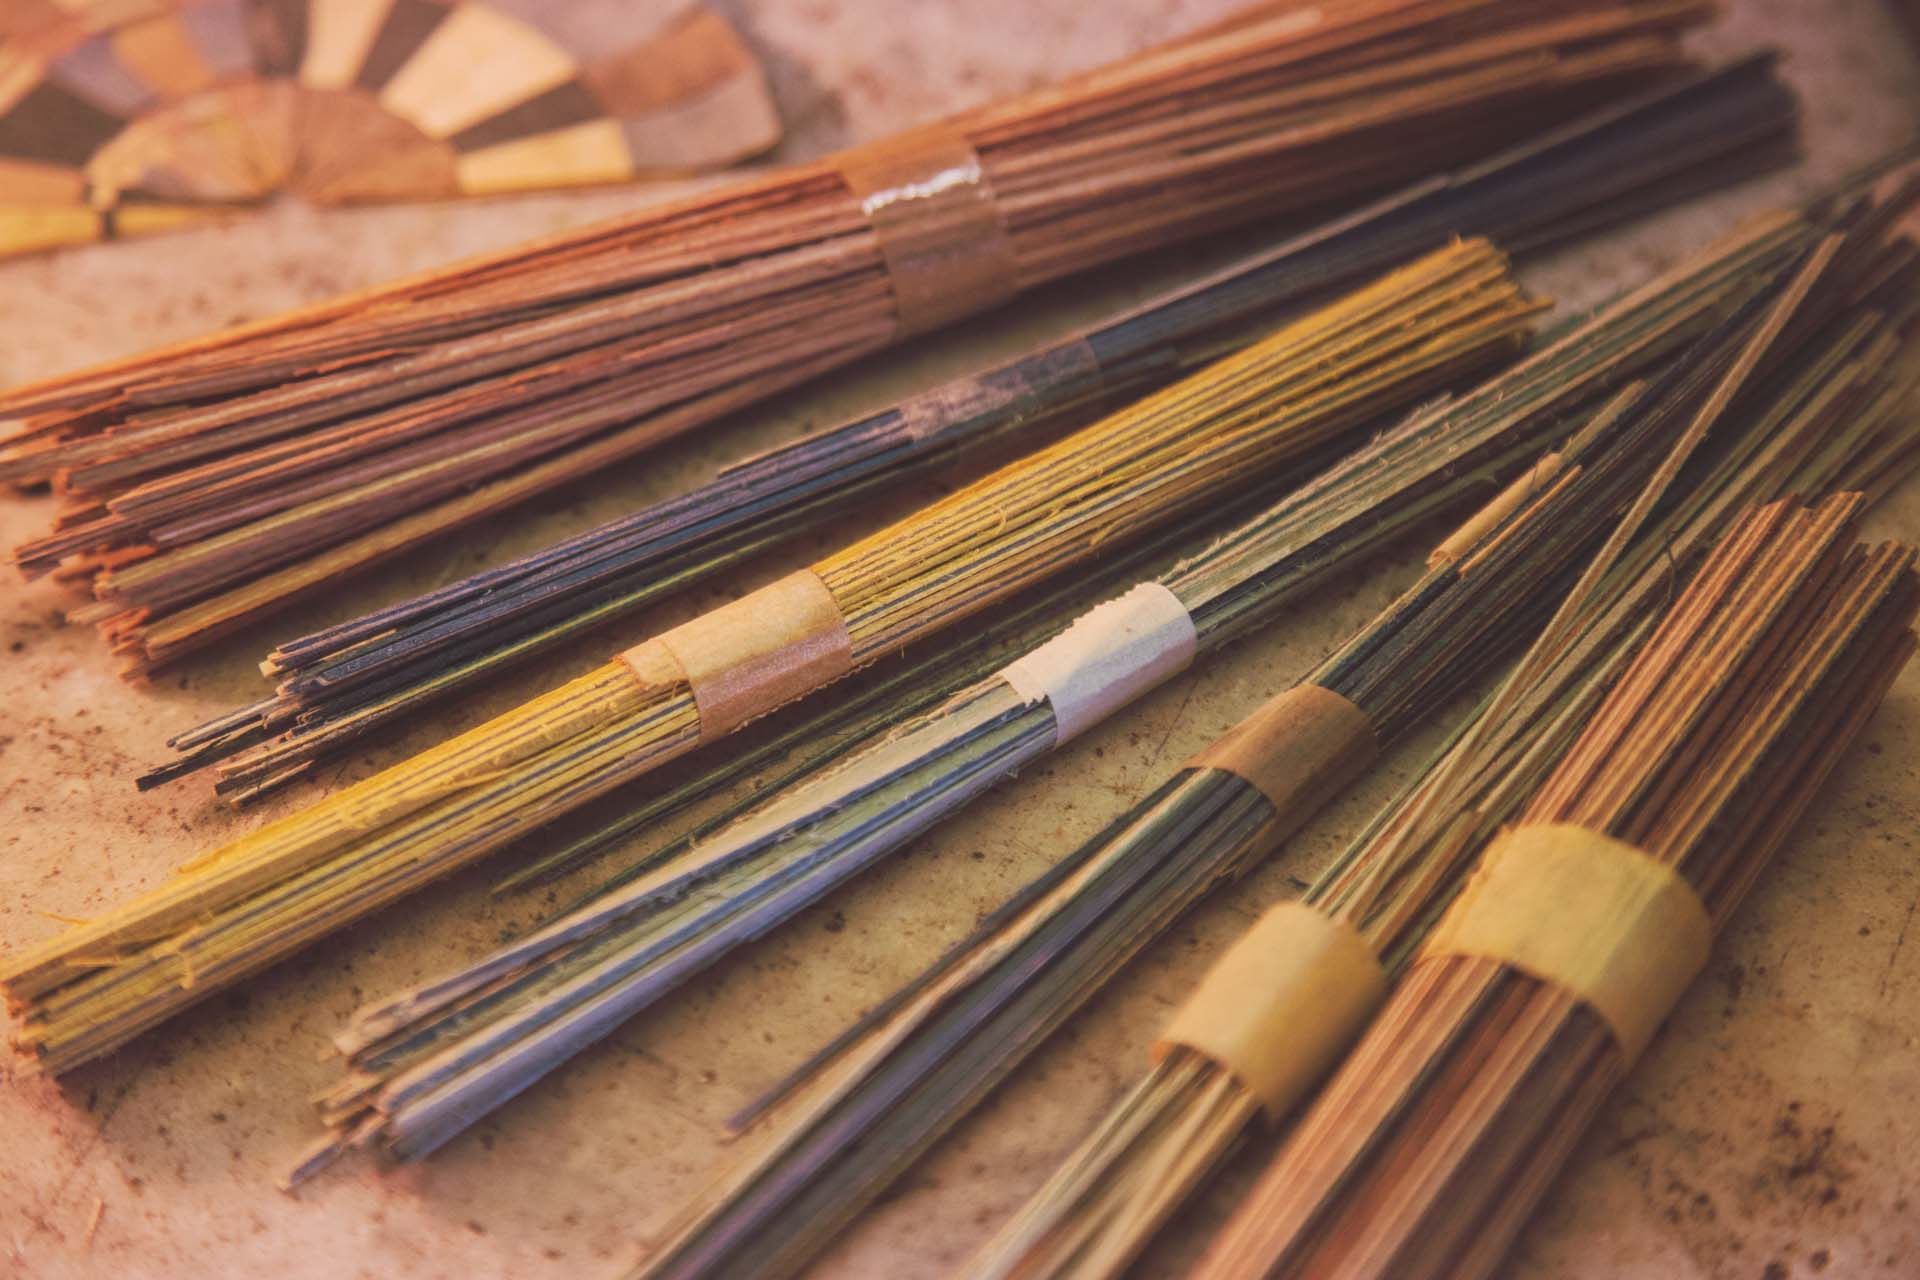 Wood sticks for handmade inlaid woodworks